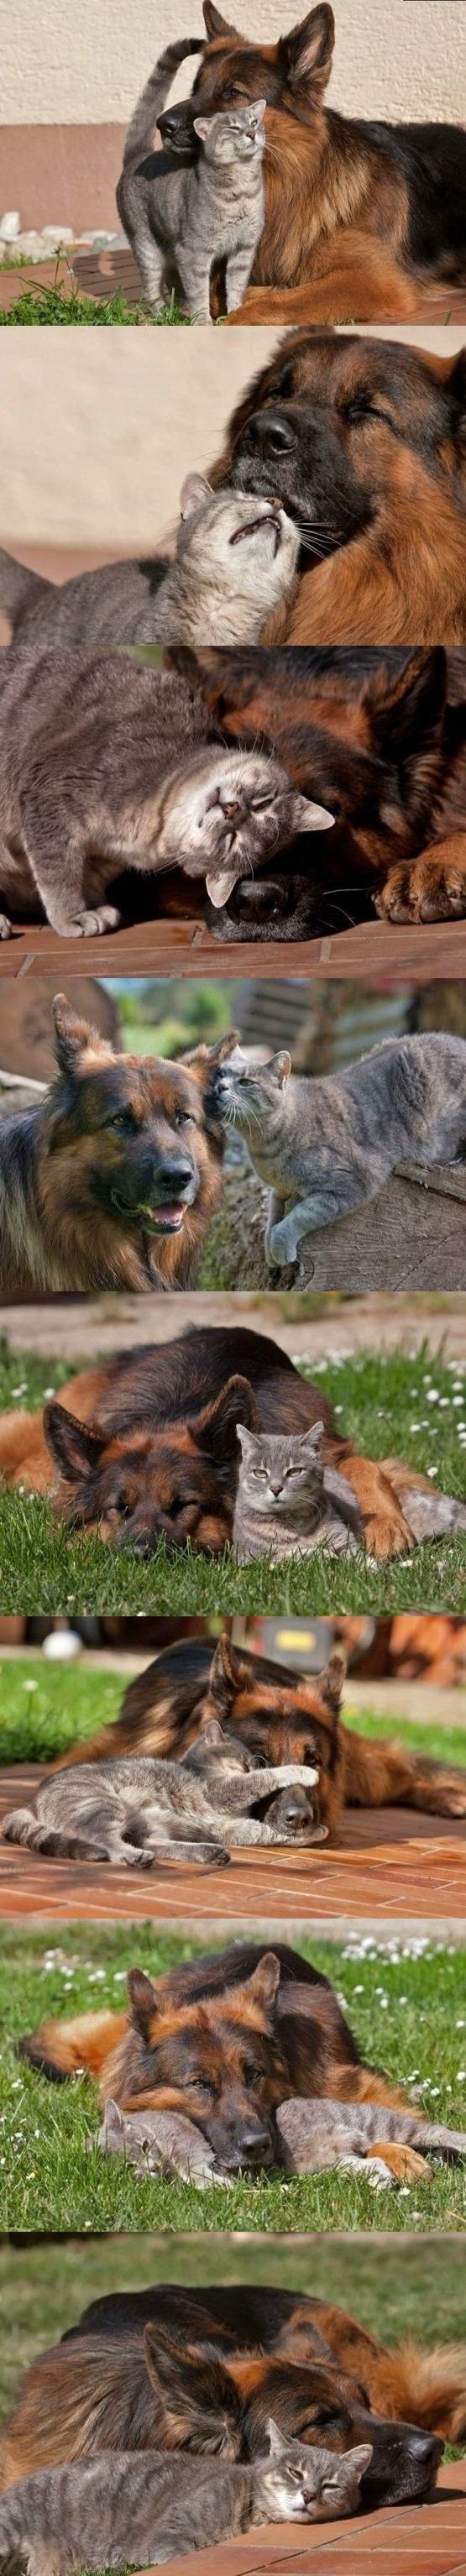 A cat and dog that play together, sleep together and cuddle each other.